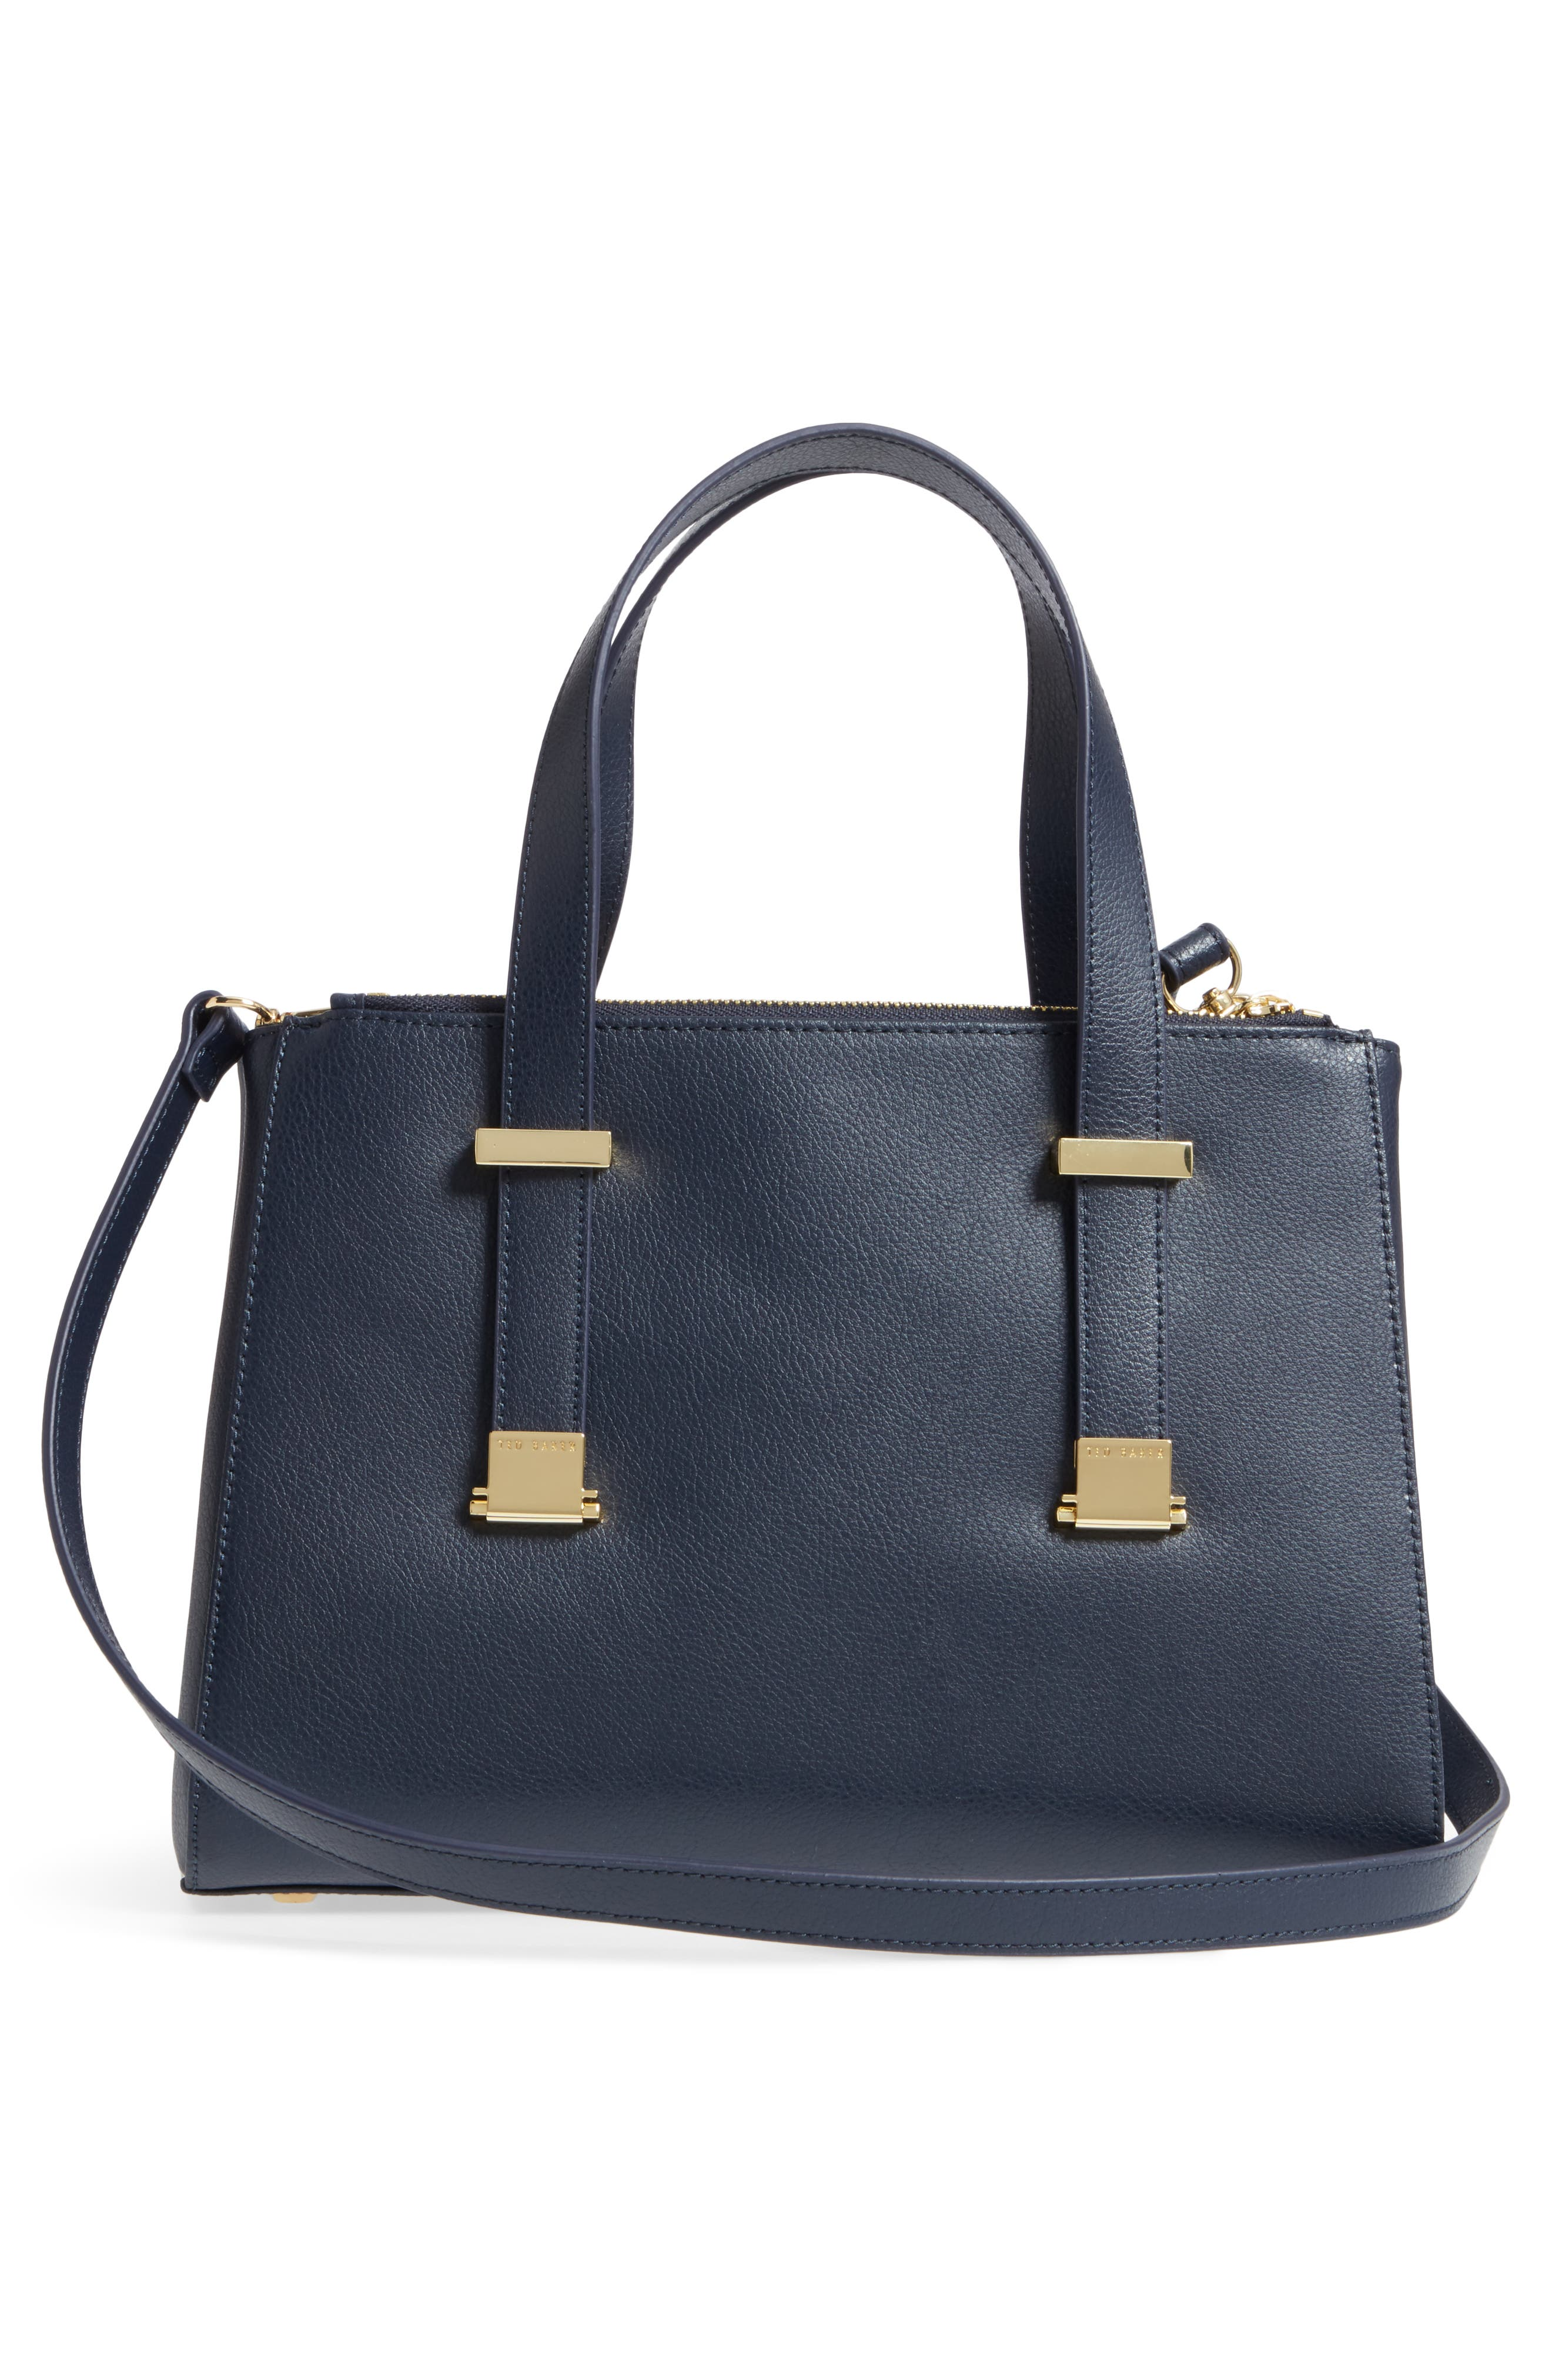 Ameliee Leather Satchel,                             Alternate thumbnail 3, color,